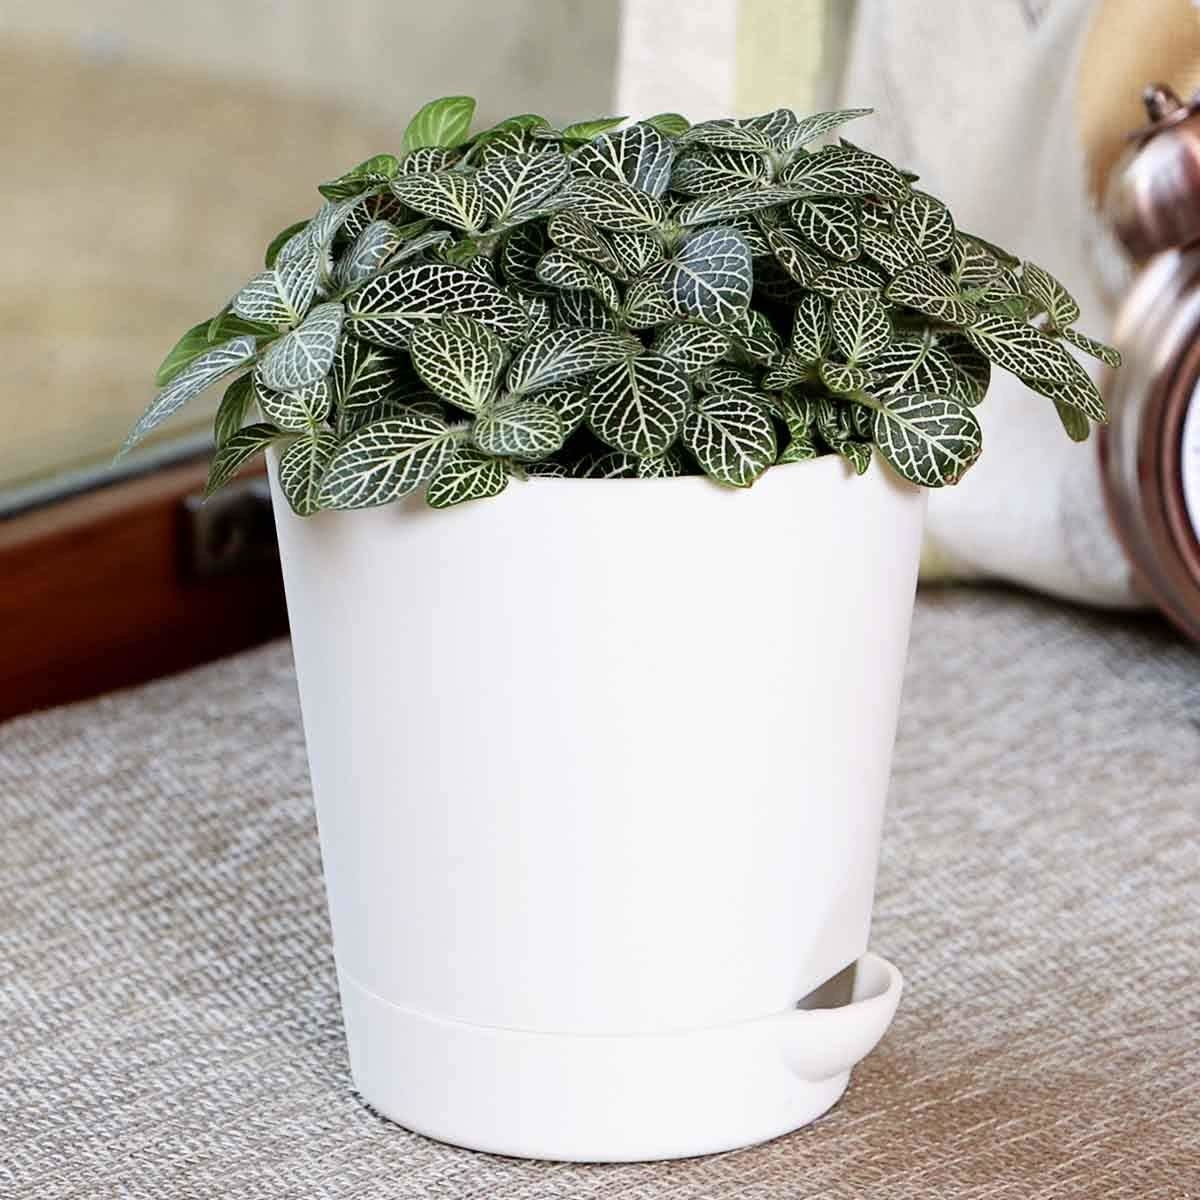 A plant in a white flower pot